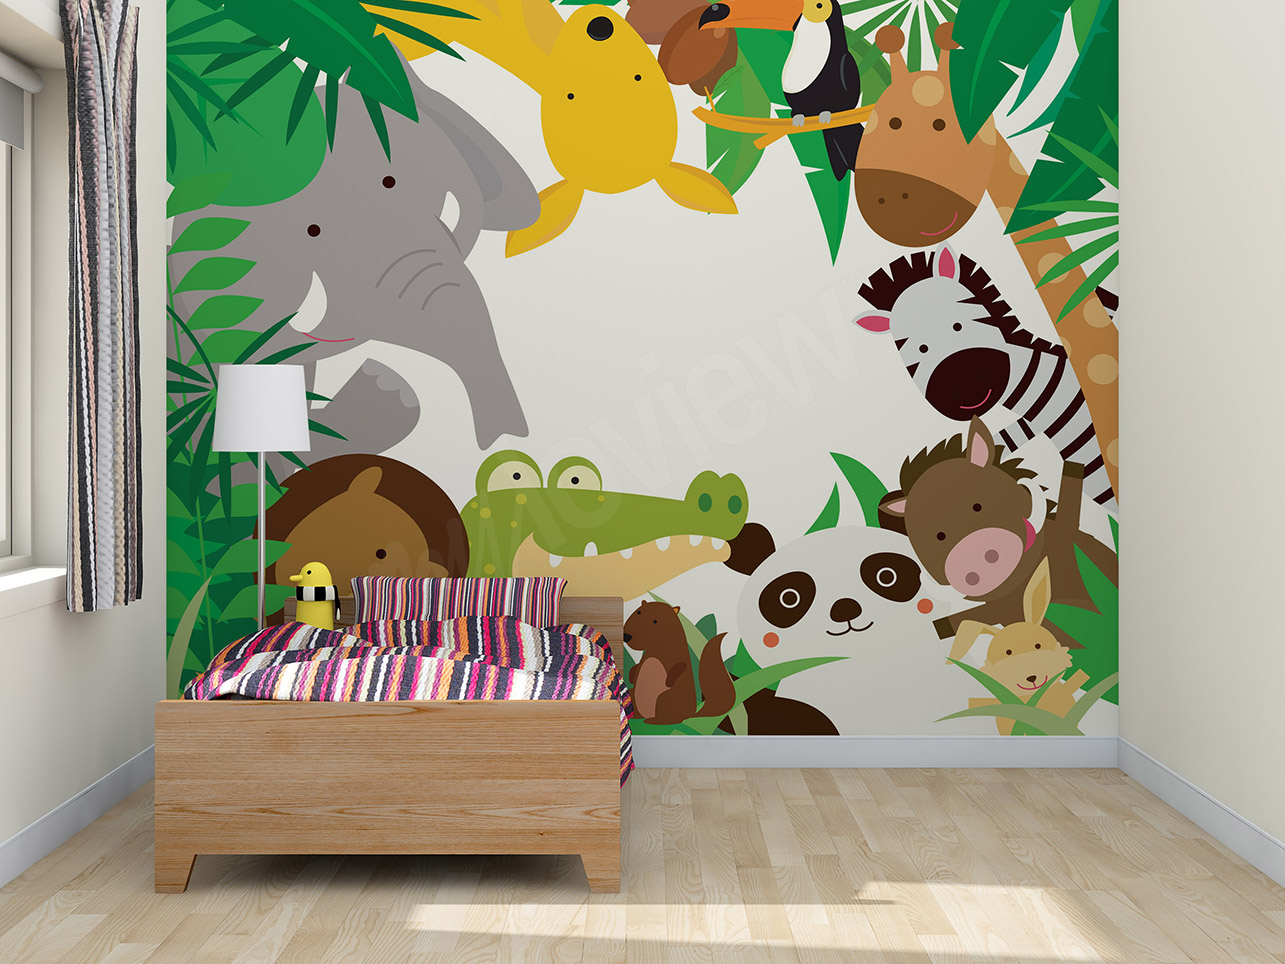 Sticker mural une solution de d coration rapide et for Stickers chambre d enfant